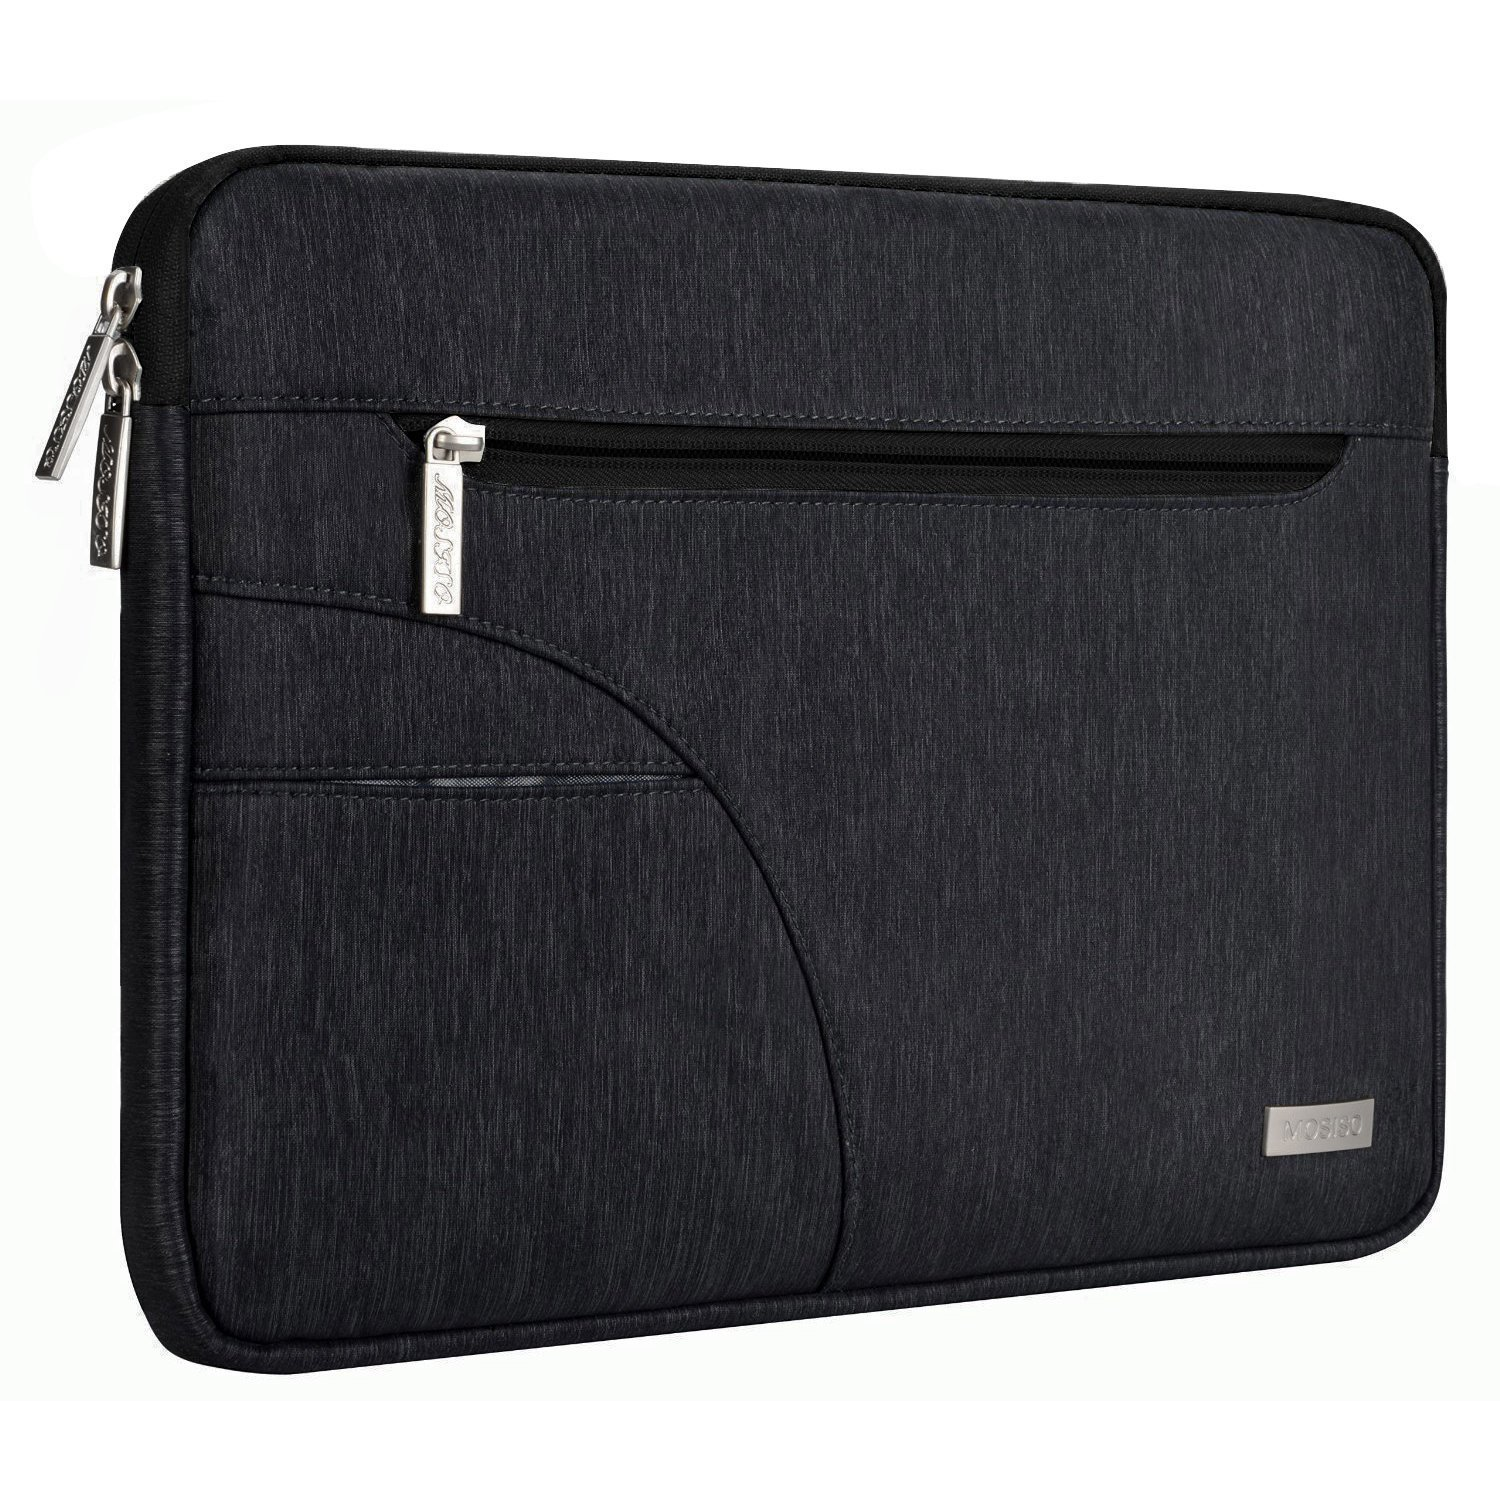 MOSISO Laptop Sleeve Compatible 13 Inch New MacBook Pro Touch Bar A1989 & A1706 & A1708 2018 2017 2016, Microsoft New Surface Pro 5/4/3, Dell XPS 13, Polyester Case Cover Tablet Bag, Black